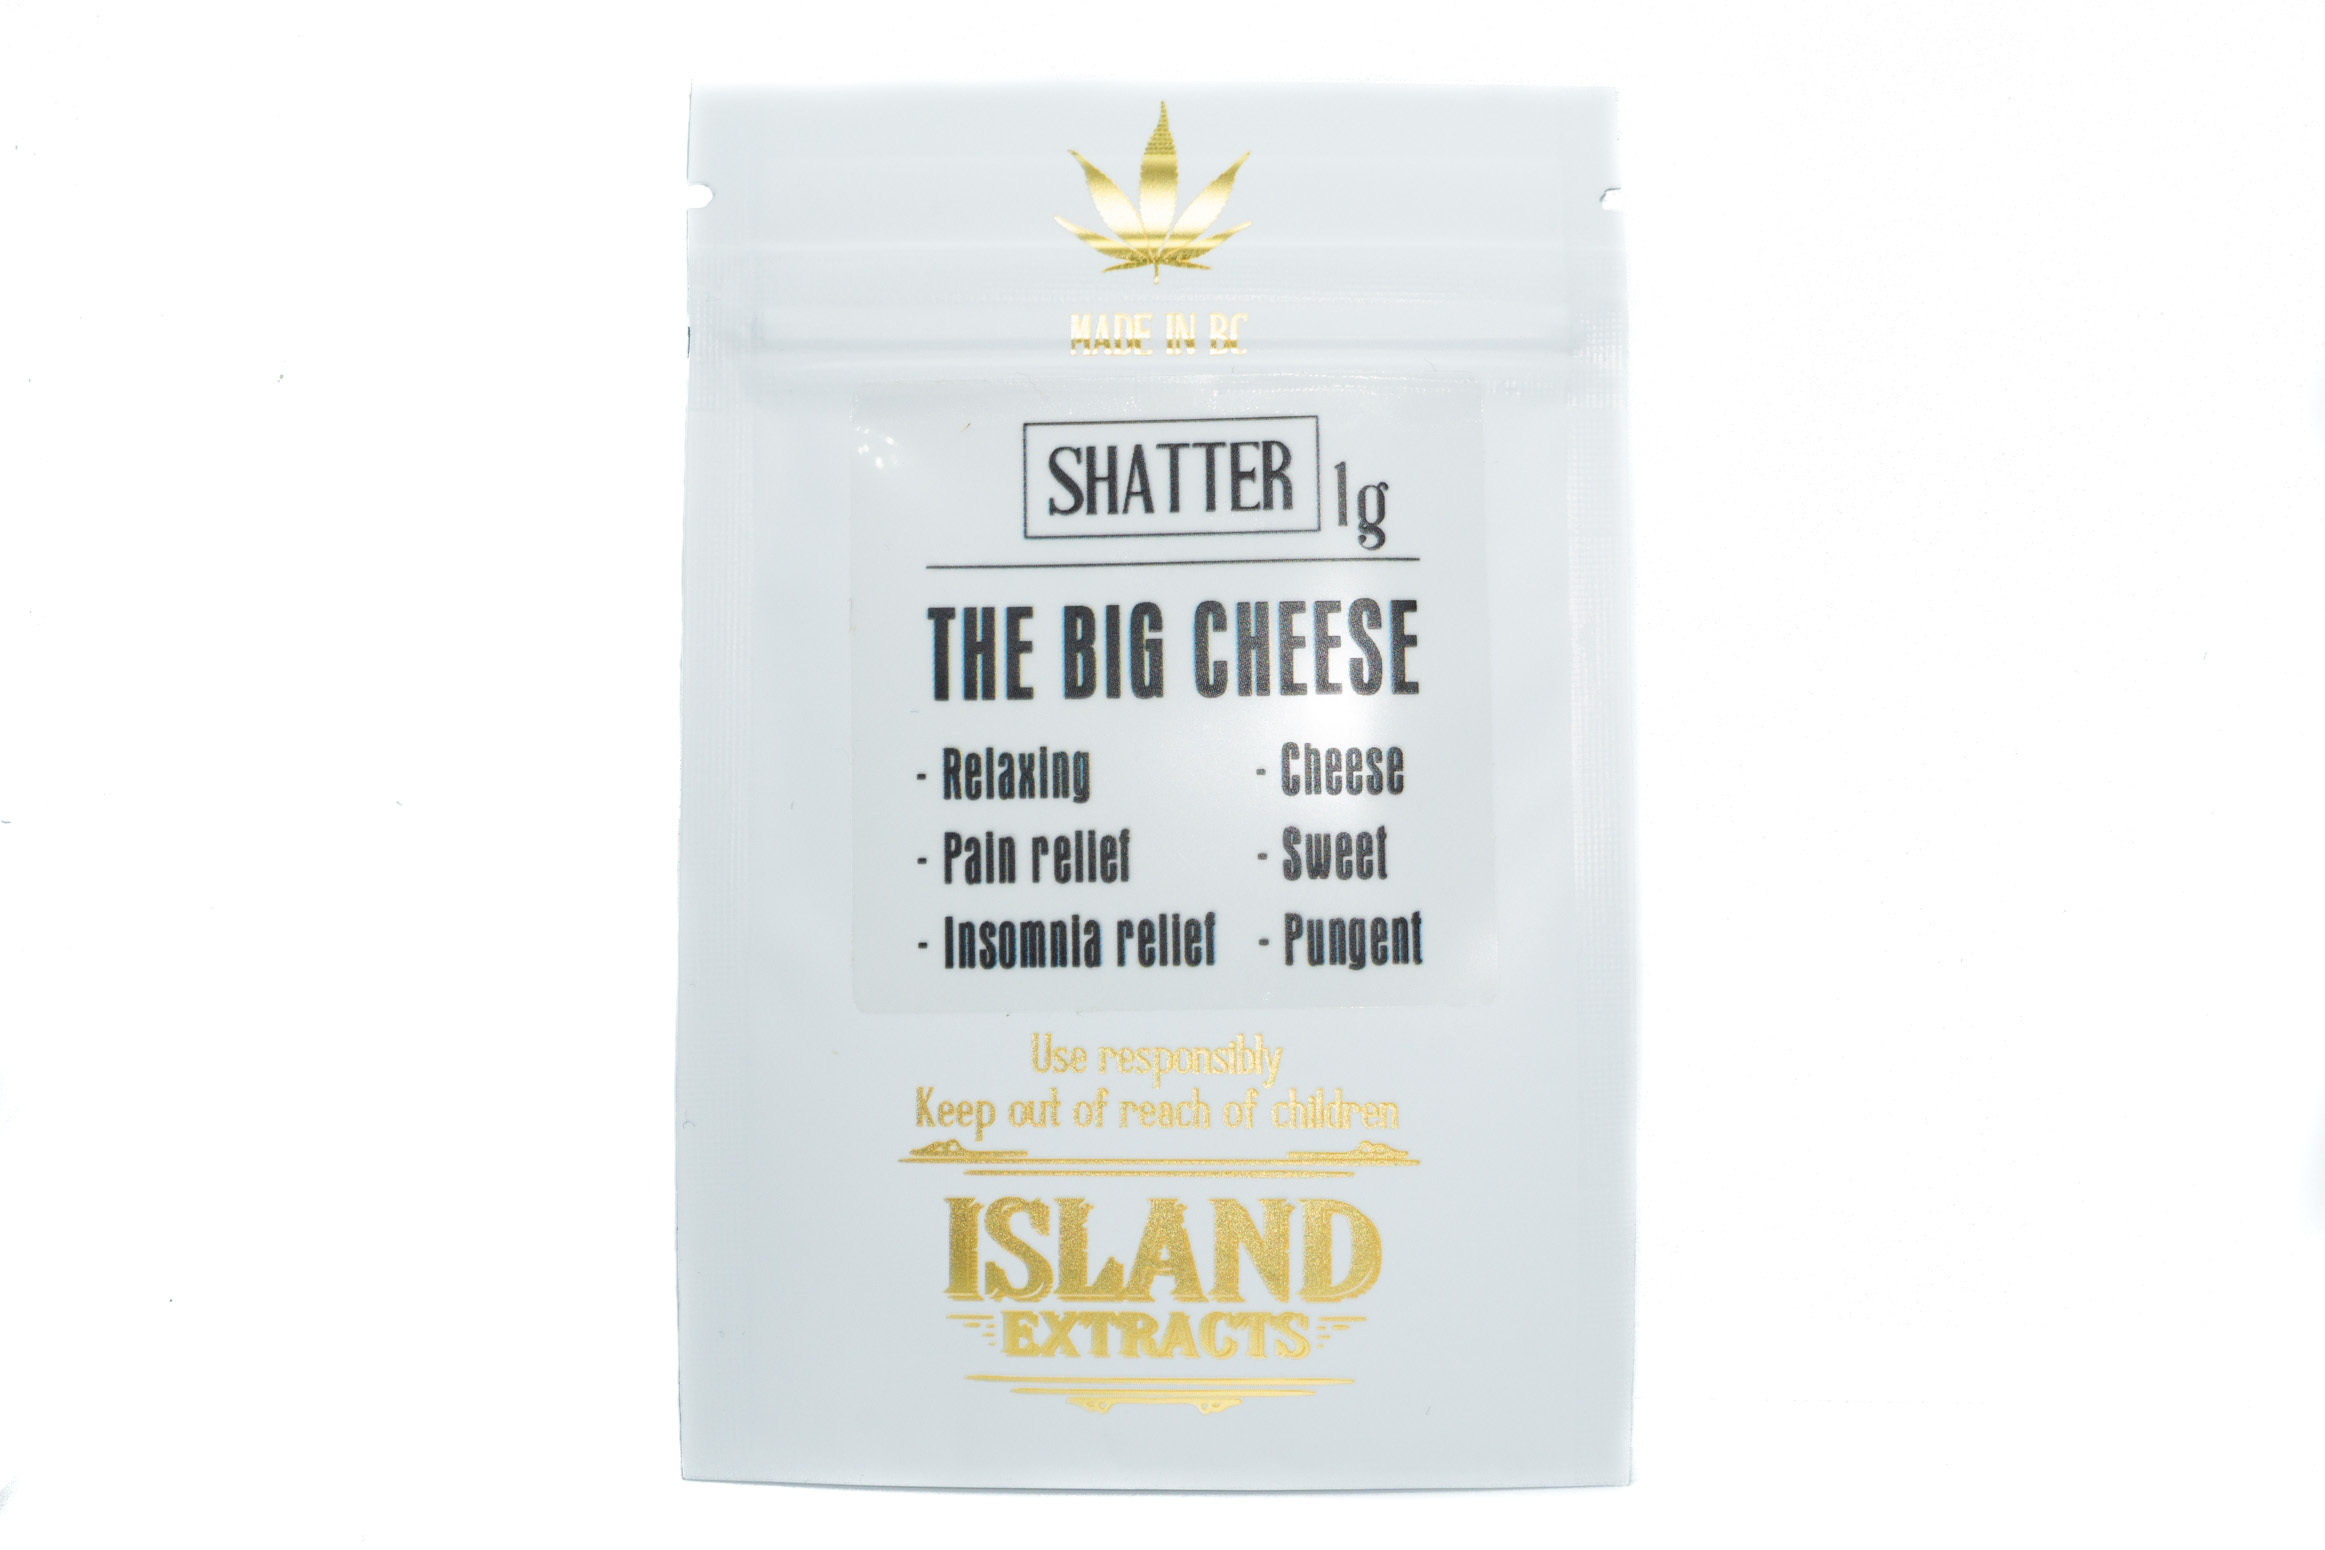 The Big Cheese Shatter (1g) by Island Extracts 01223